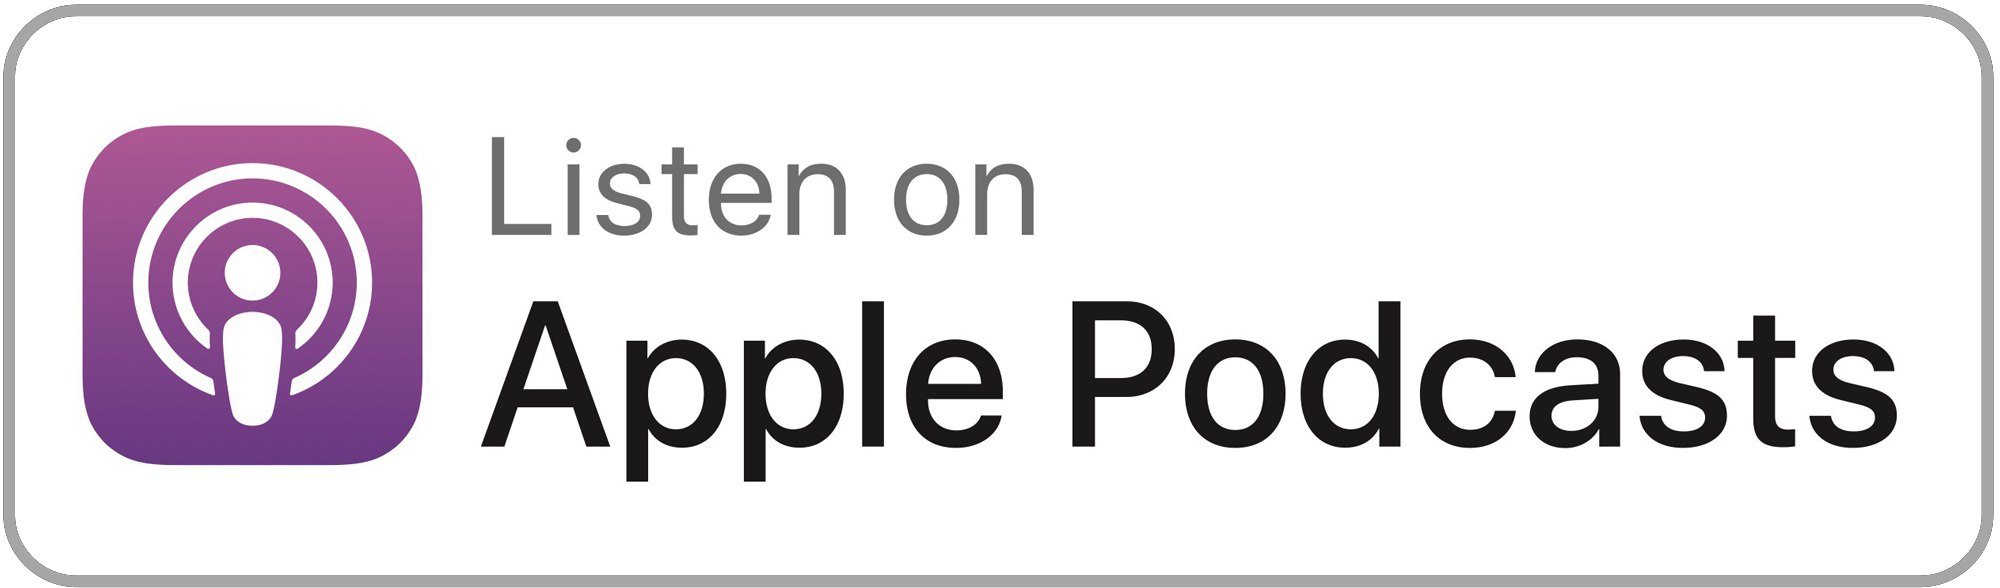 Listen on Apple Podcasts!